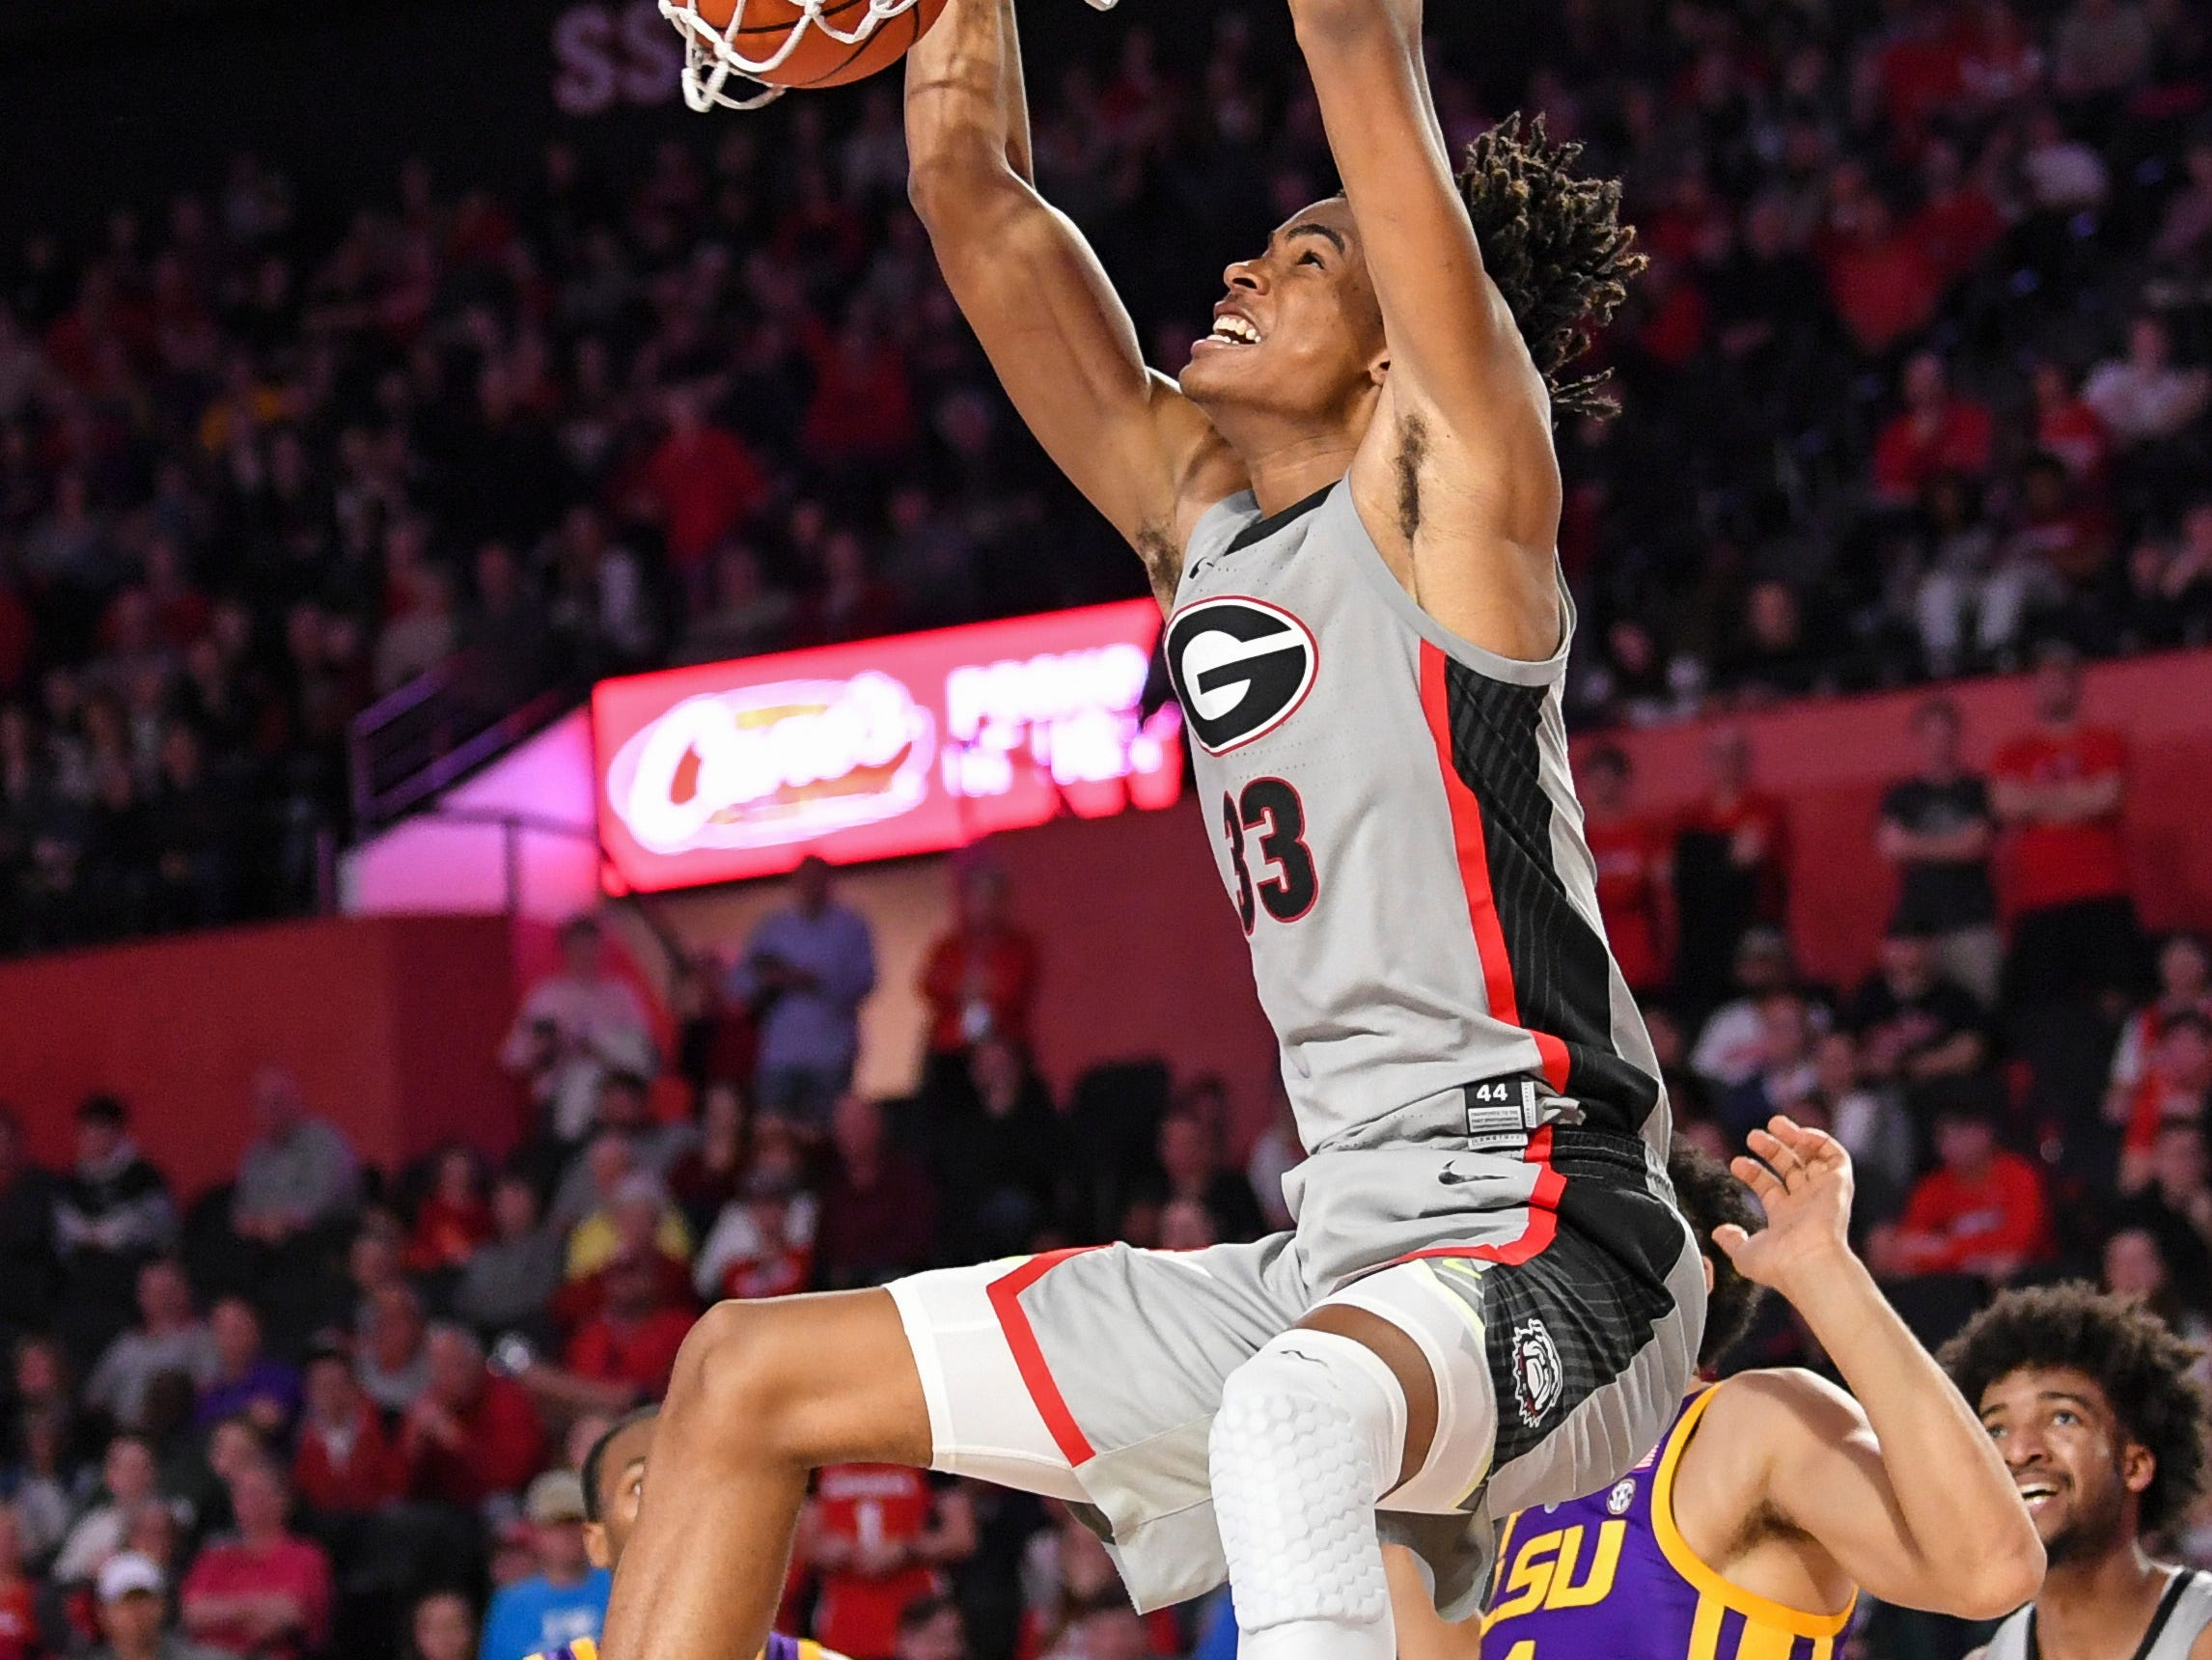 Feb 16, 2019; Athens, GA, USA; Georgia Bulldogs forward Nicolas Claxton (33) dunks against LSU Tigers guard Skylar Mays (4) during the second half at Stegeman Coliseum. Mandatory Credit: Dale Zanine-USA TODAY Sports